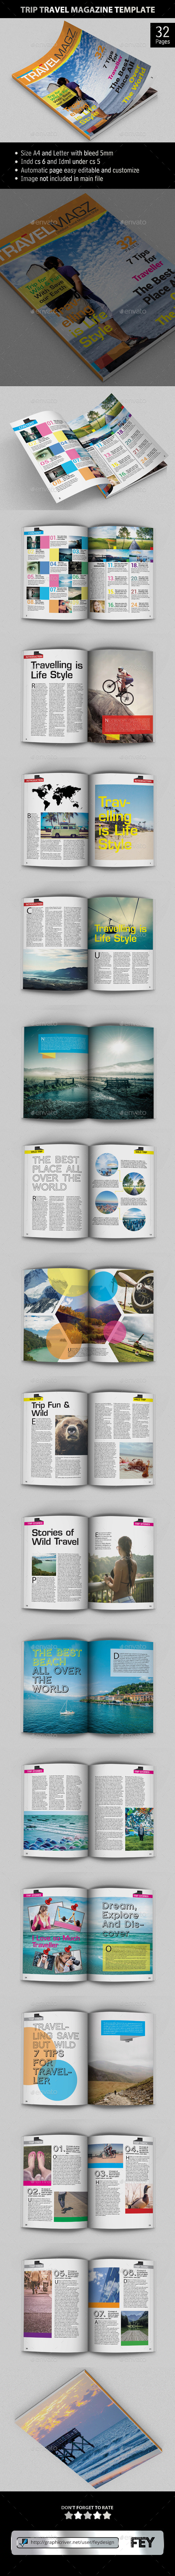 Trip Travel - Magazine Template - Magazines Print Templates